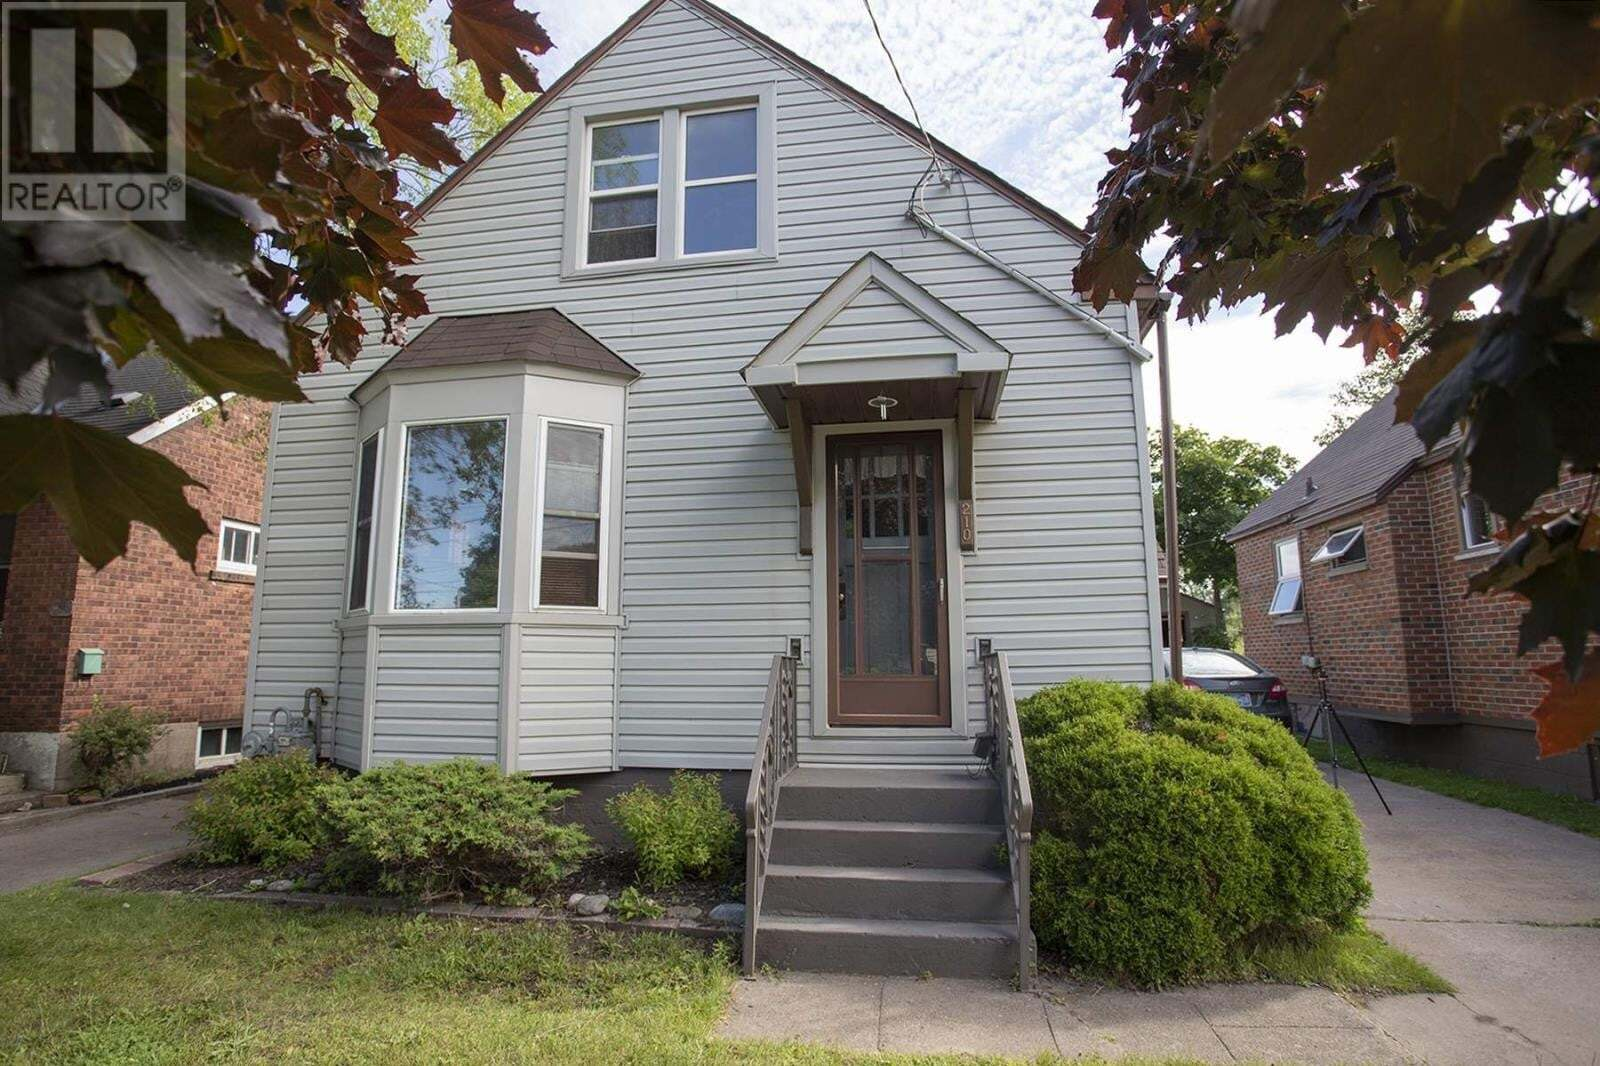 House for sale at 210 Wellington St E Sault Ste. Marie Ontario - MLS: SM129337